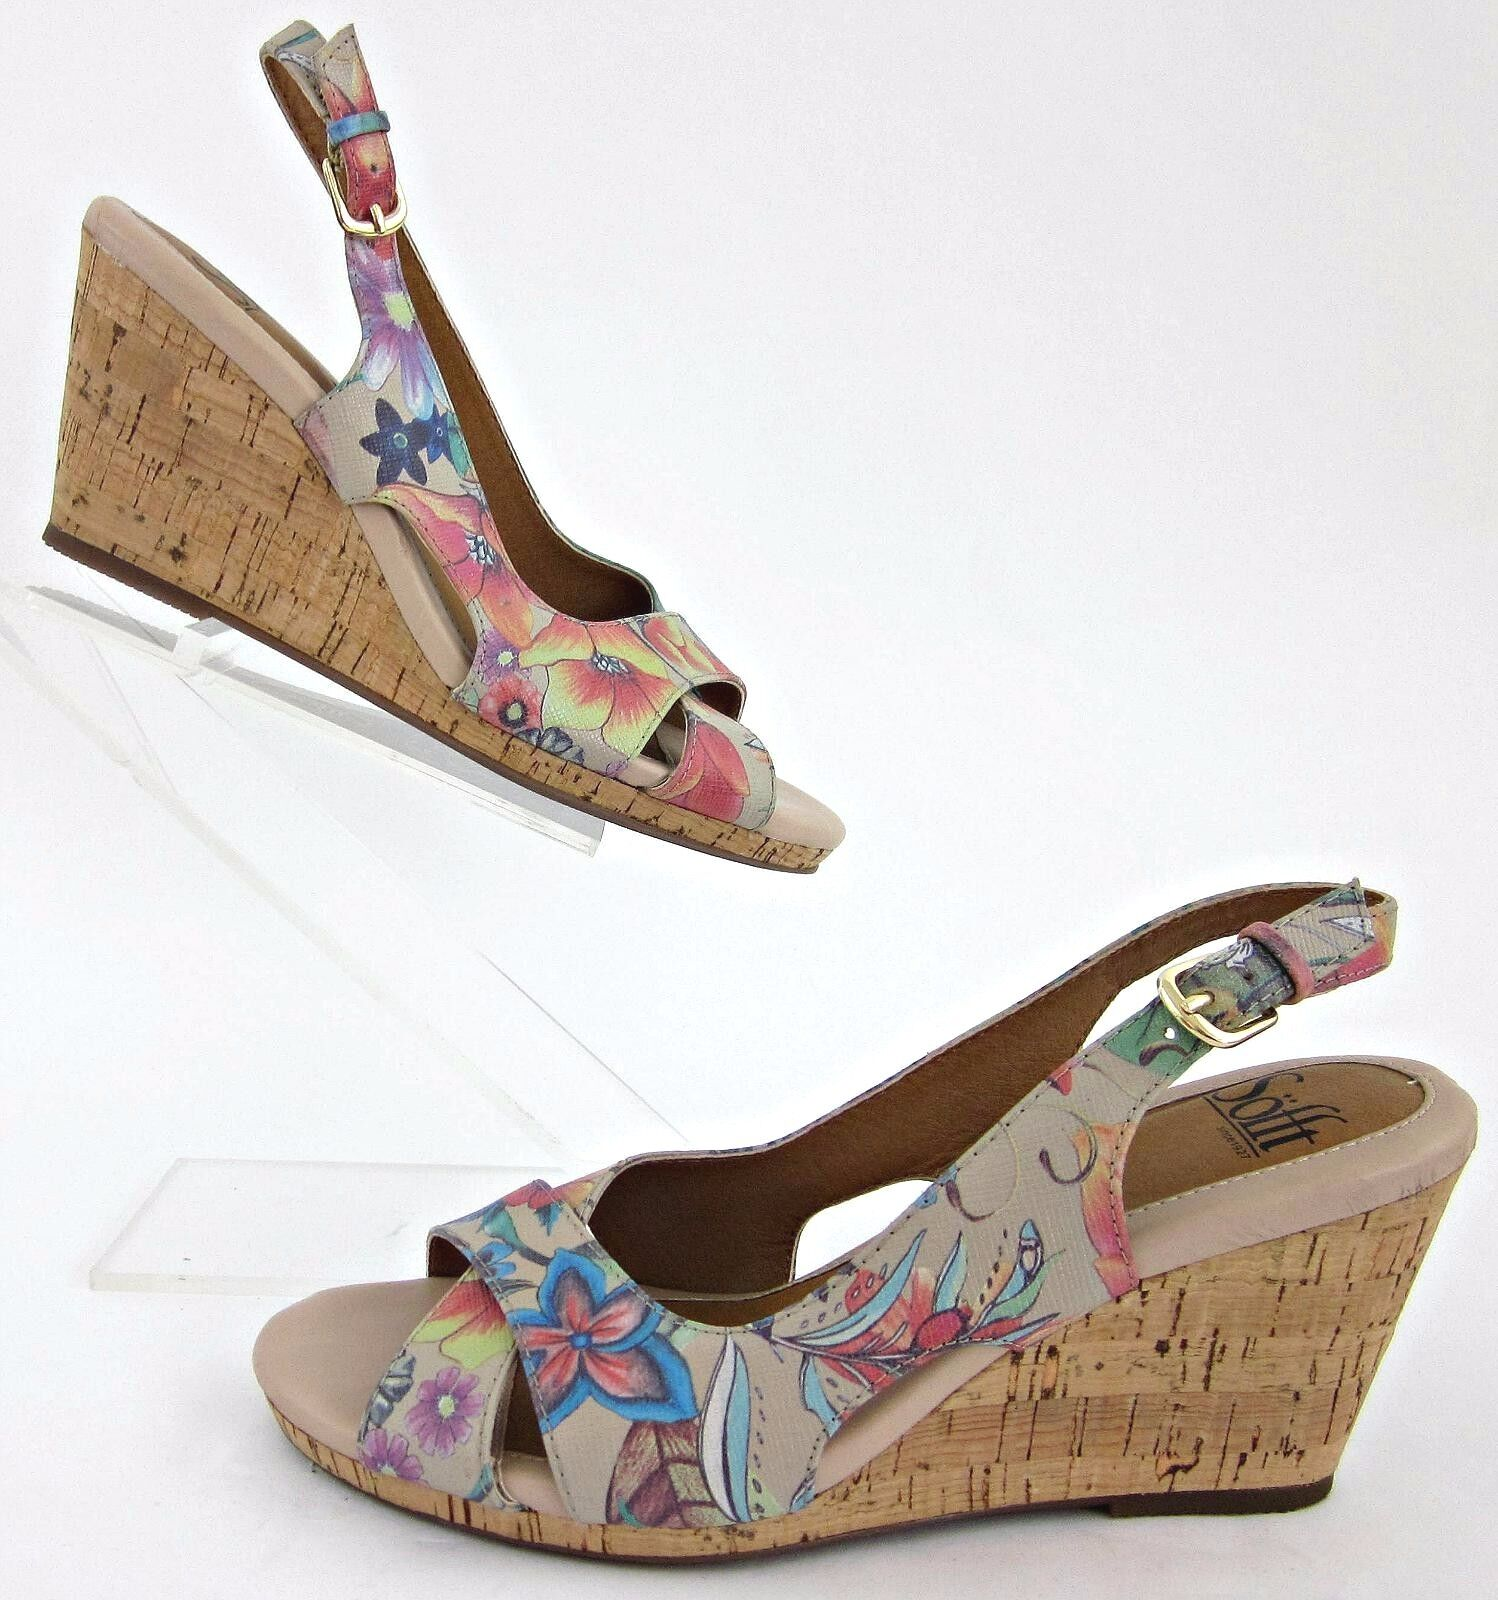 Sofft Sofft Sofft 'Cailean' Floral Print Slingback Cork Wedge Sandales Sz 6 Worn Once e65403